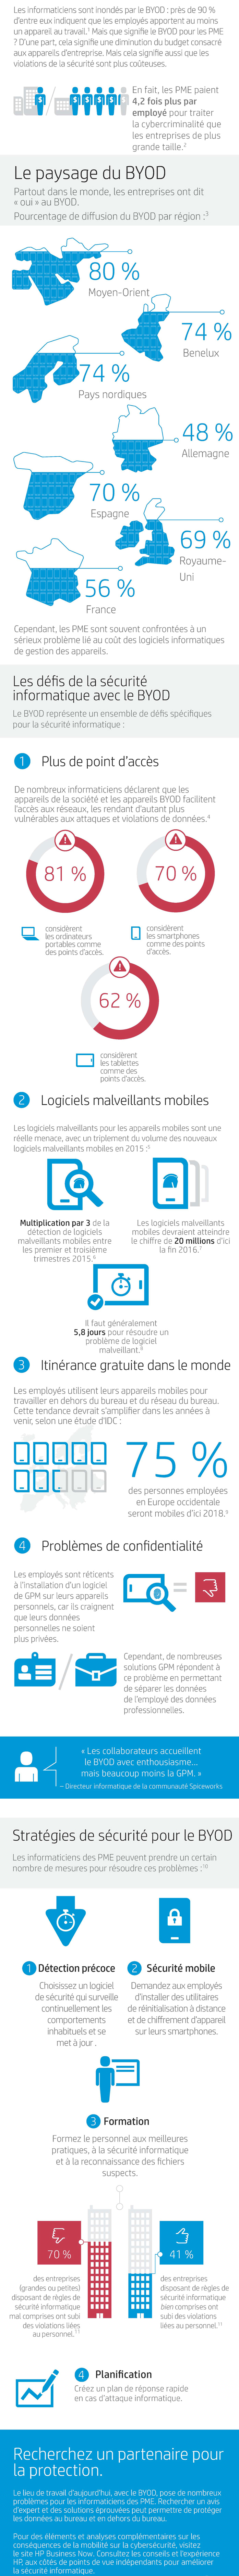 infographie-BYOD-securite